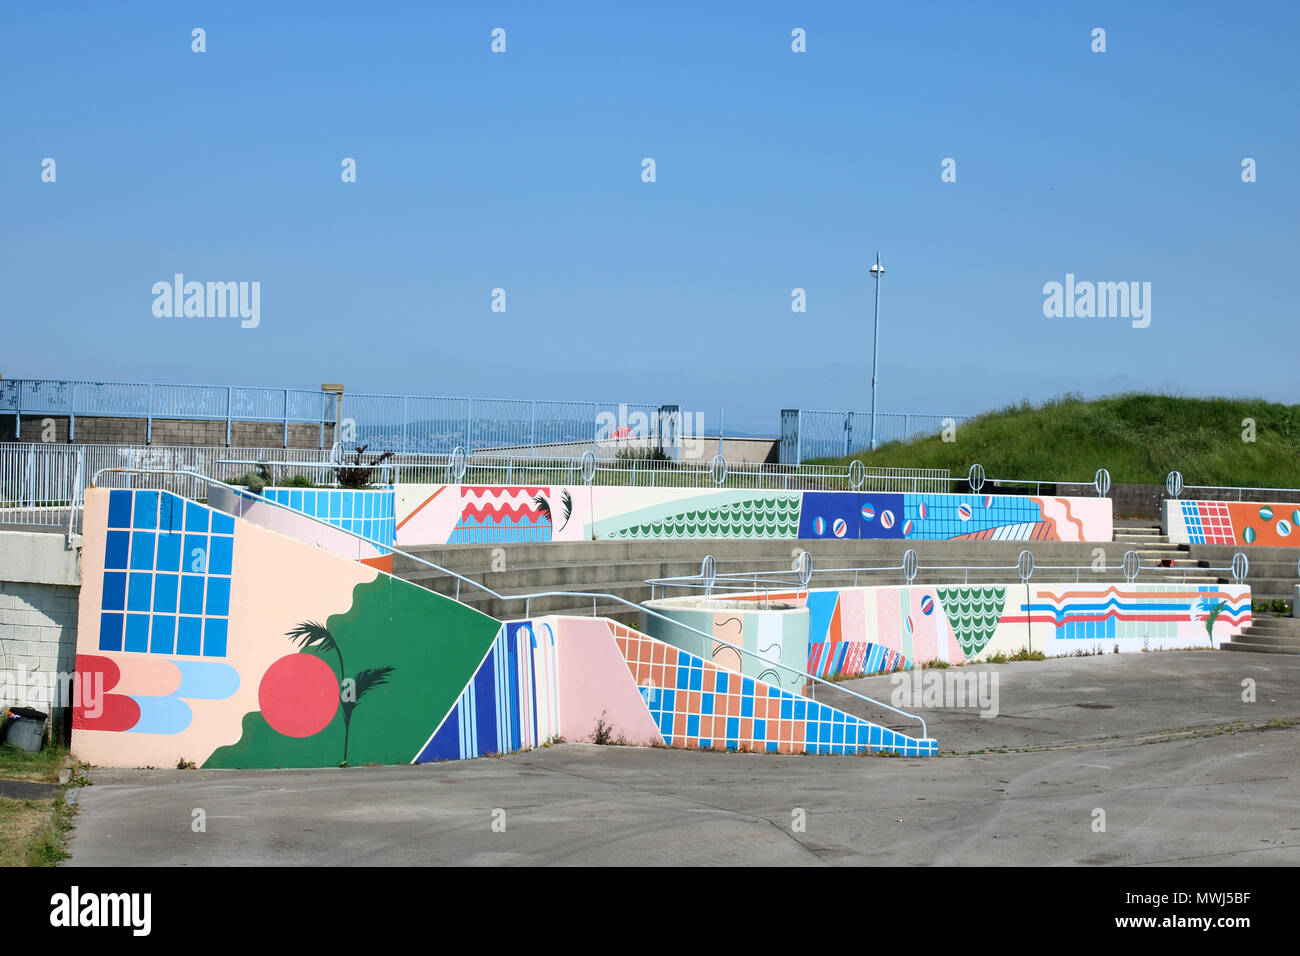 Mural type paintings of colourful patterns on walls at the former Dome and Bubbles site on Morecambe promenade, Morecambe, Lancashire, England. - Stock Image